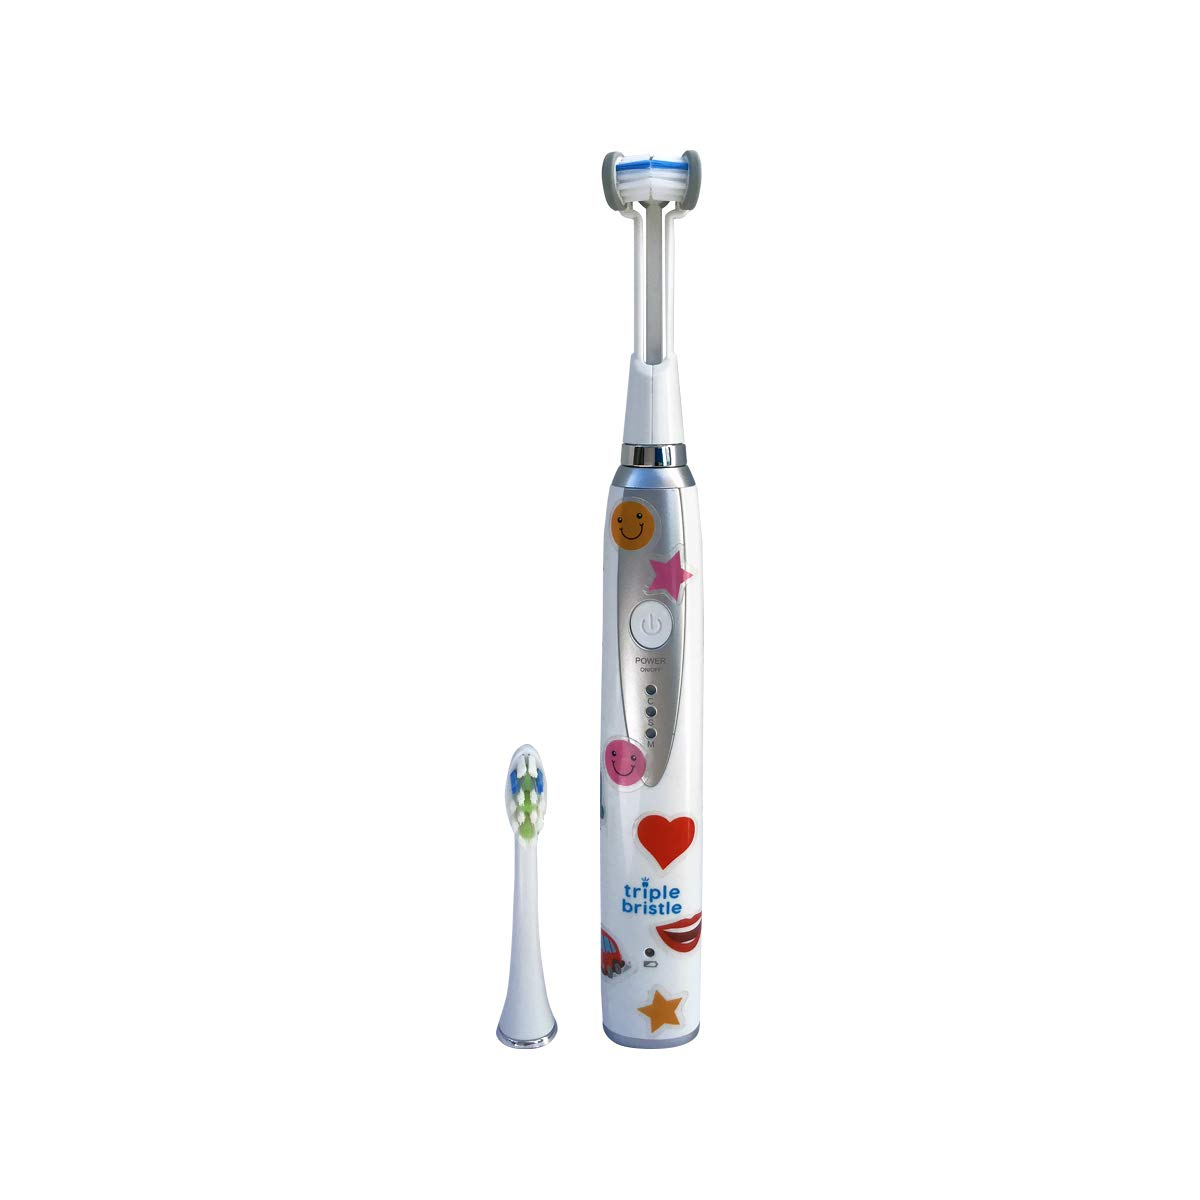 Triple Bristle Best Kids Sonic Toothbrush – Whiter Teeth Brighter Smile – Rechargeable 31,000 VPM Tooth Brush – Patented 3 Brush Head Design – Perfect Angle Bristles Clean Each Tooth One Pack